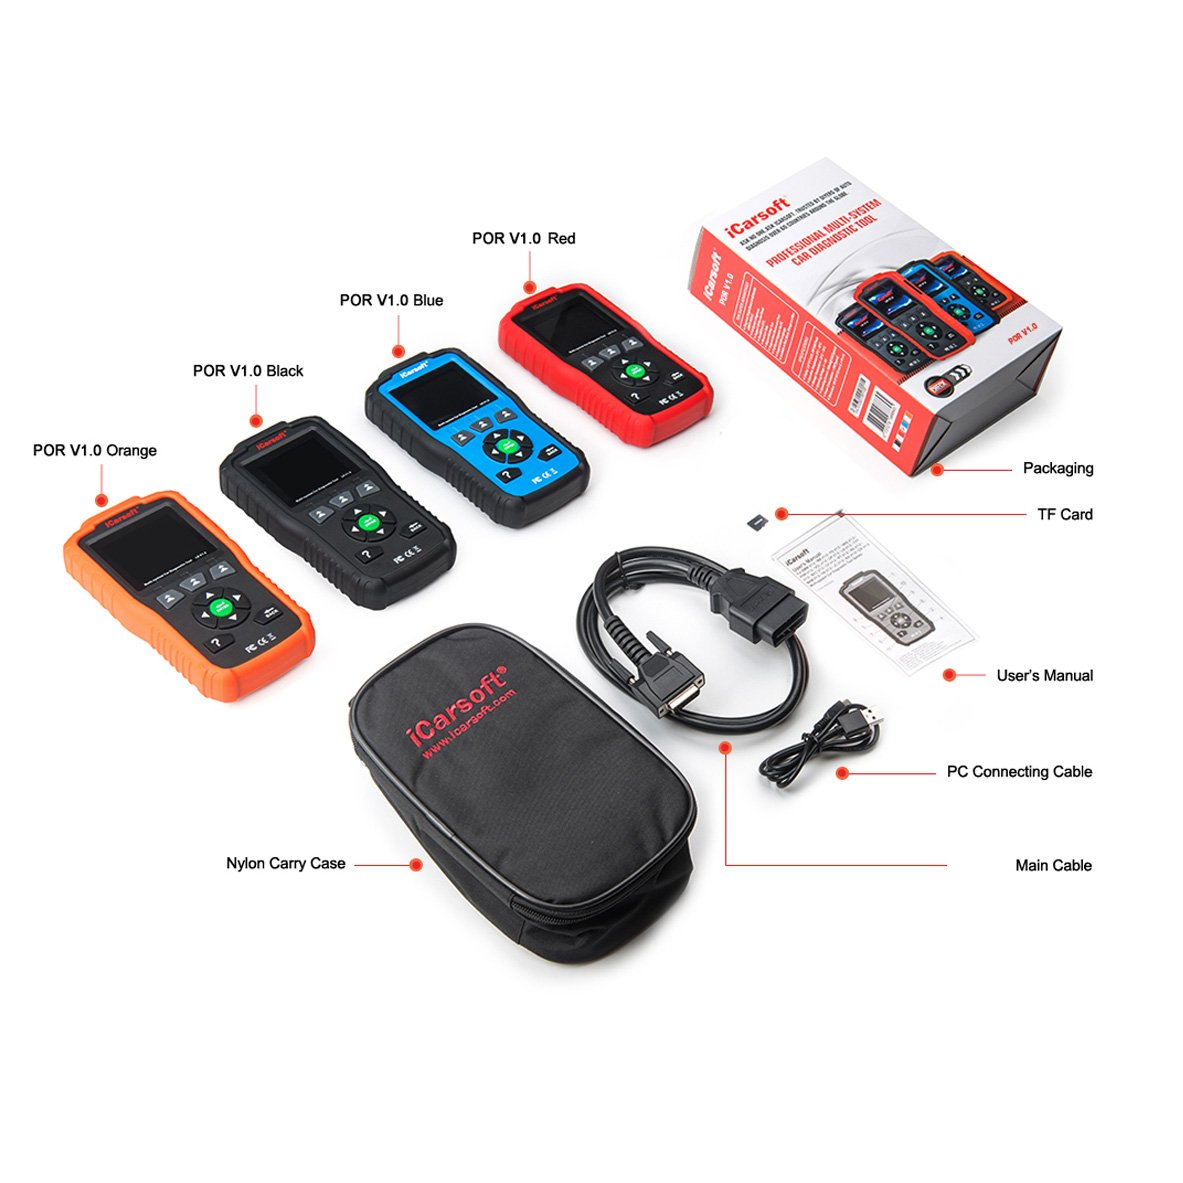 iCarsoft Auto Diagnostic Scanner POR V1.0 for Porsche with Airbag Scan,Oil Service Reset ect by iCarsoft (Image #1)